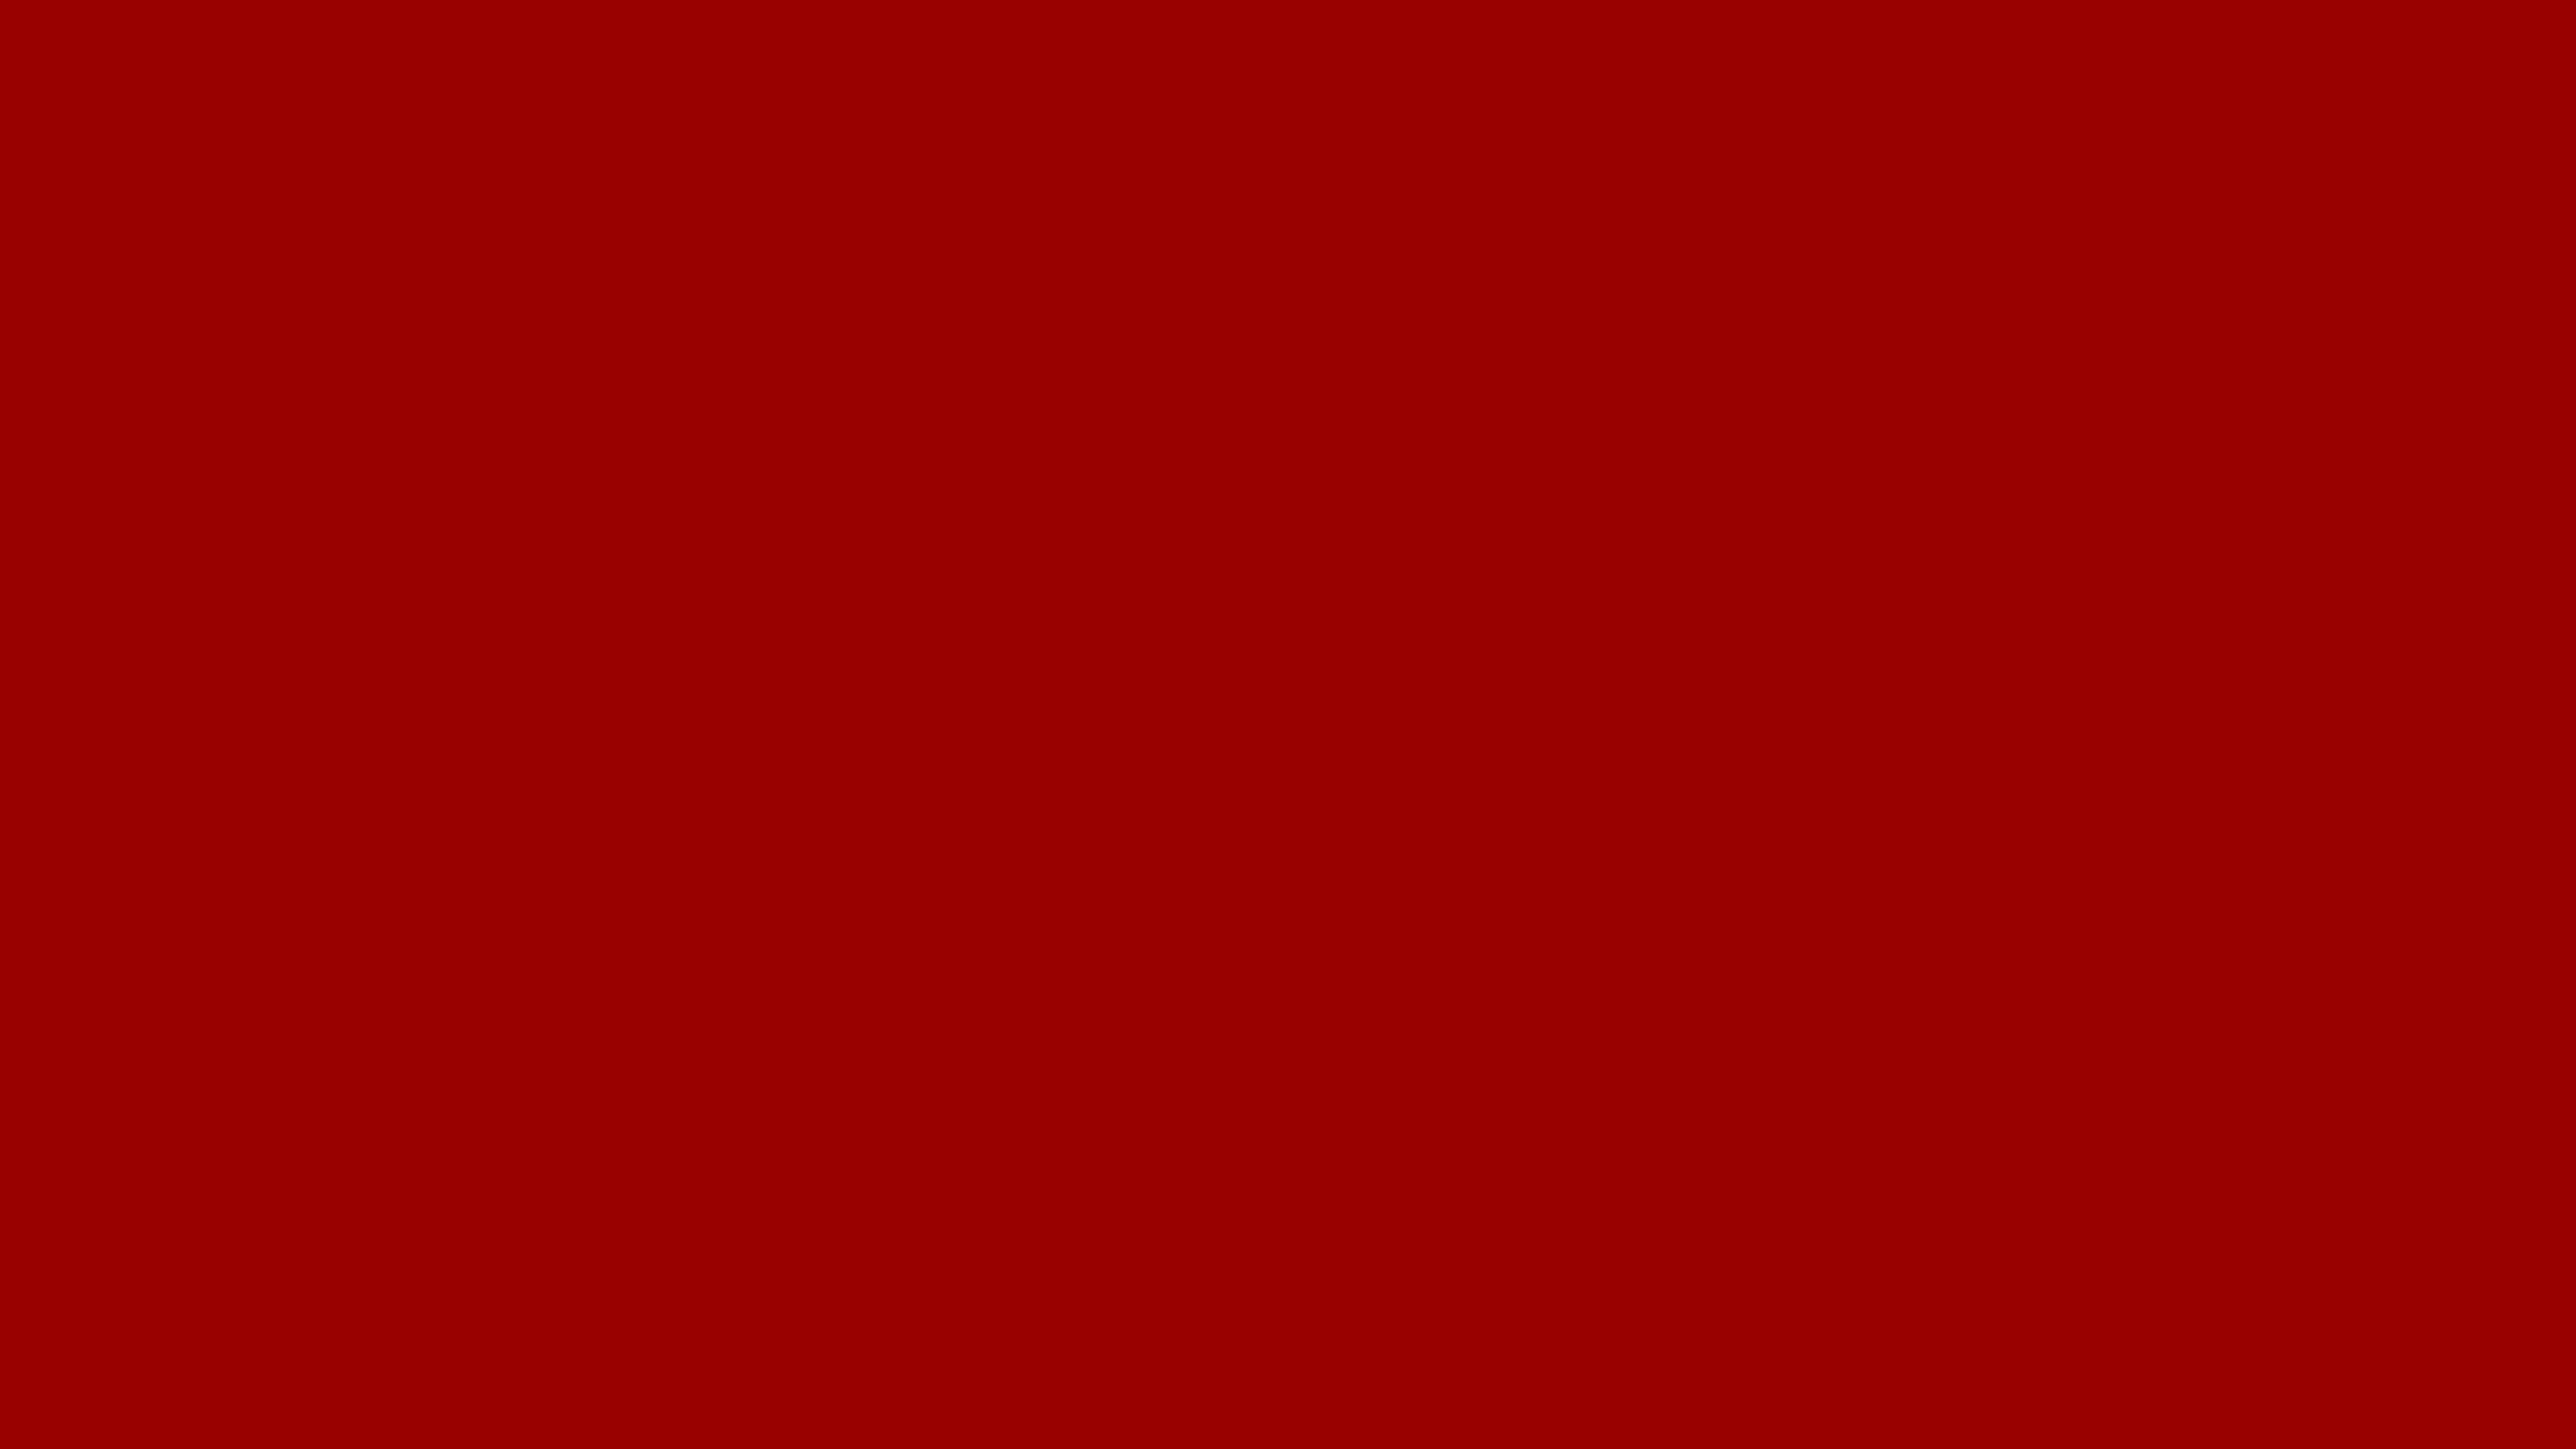 3840x2160 USC Cardinal Solid Color Background